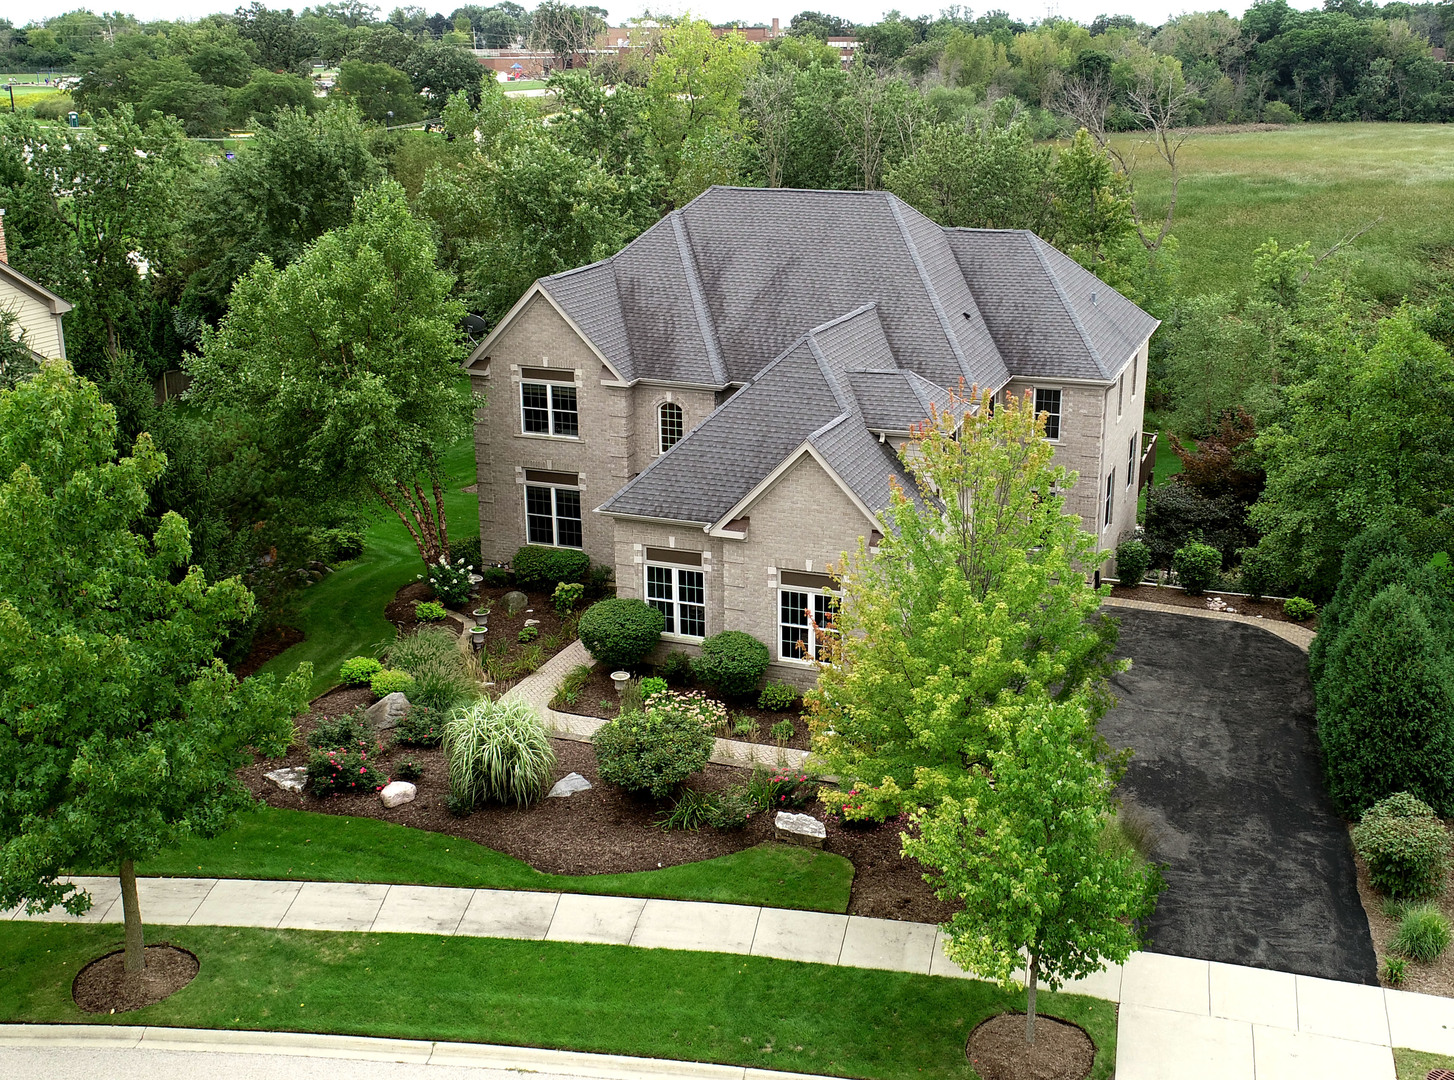 267 Clair View Court, Lake Zurich, Illinois 60047